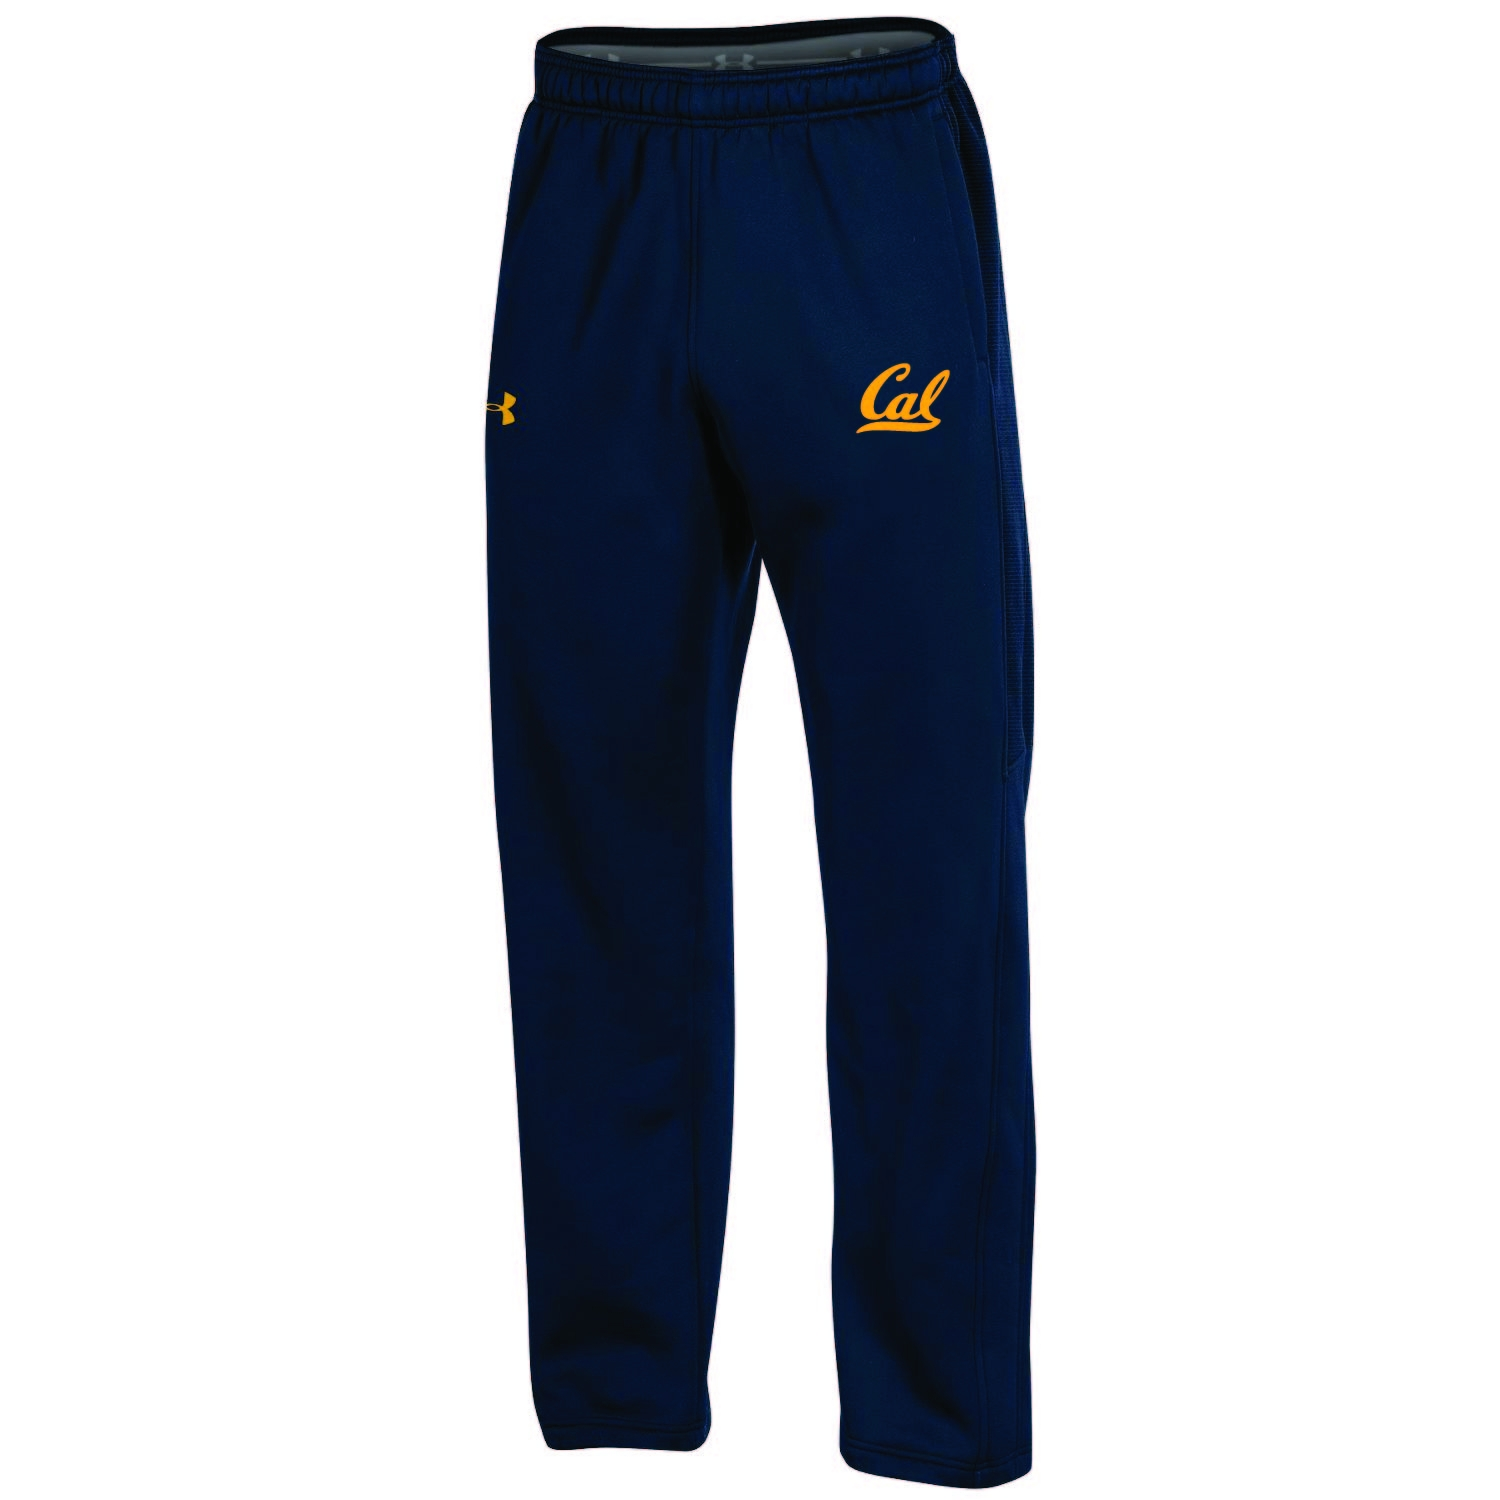 University of California Berkeley Under Armour Sideline Storm Fleece Pant